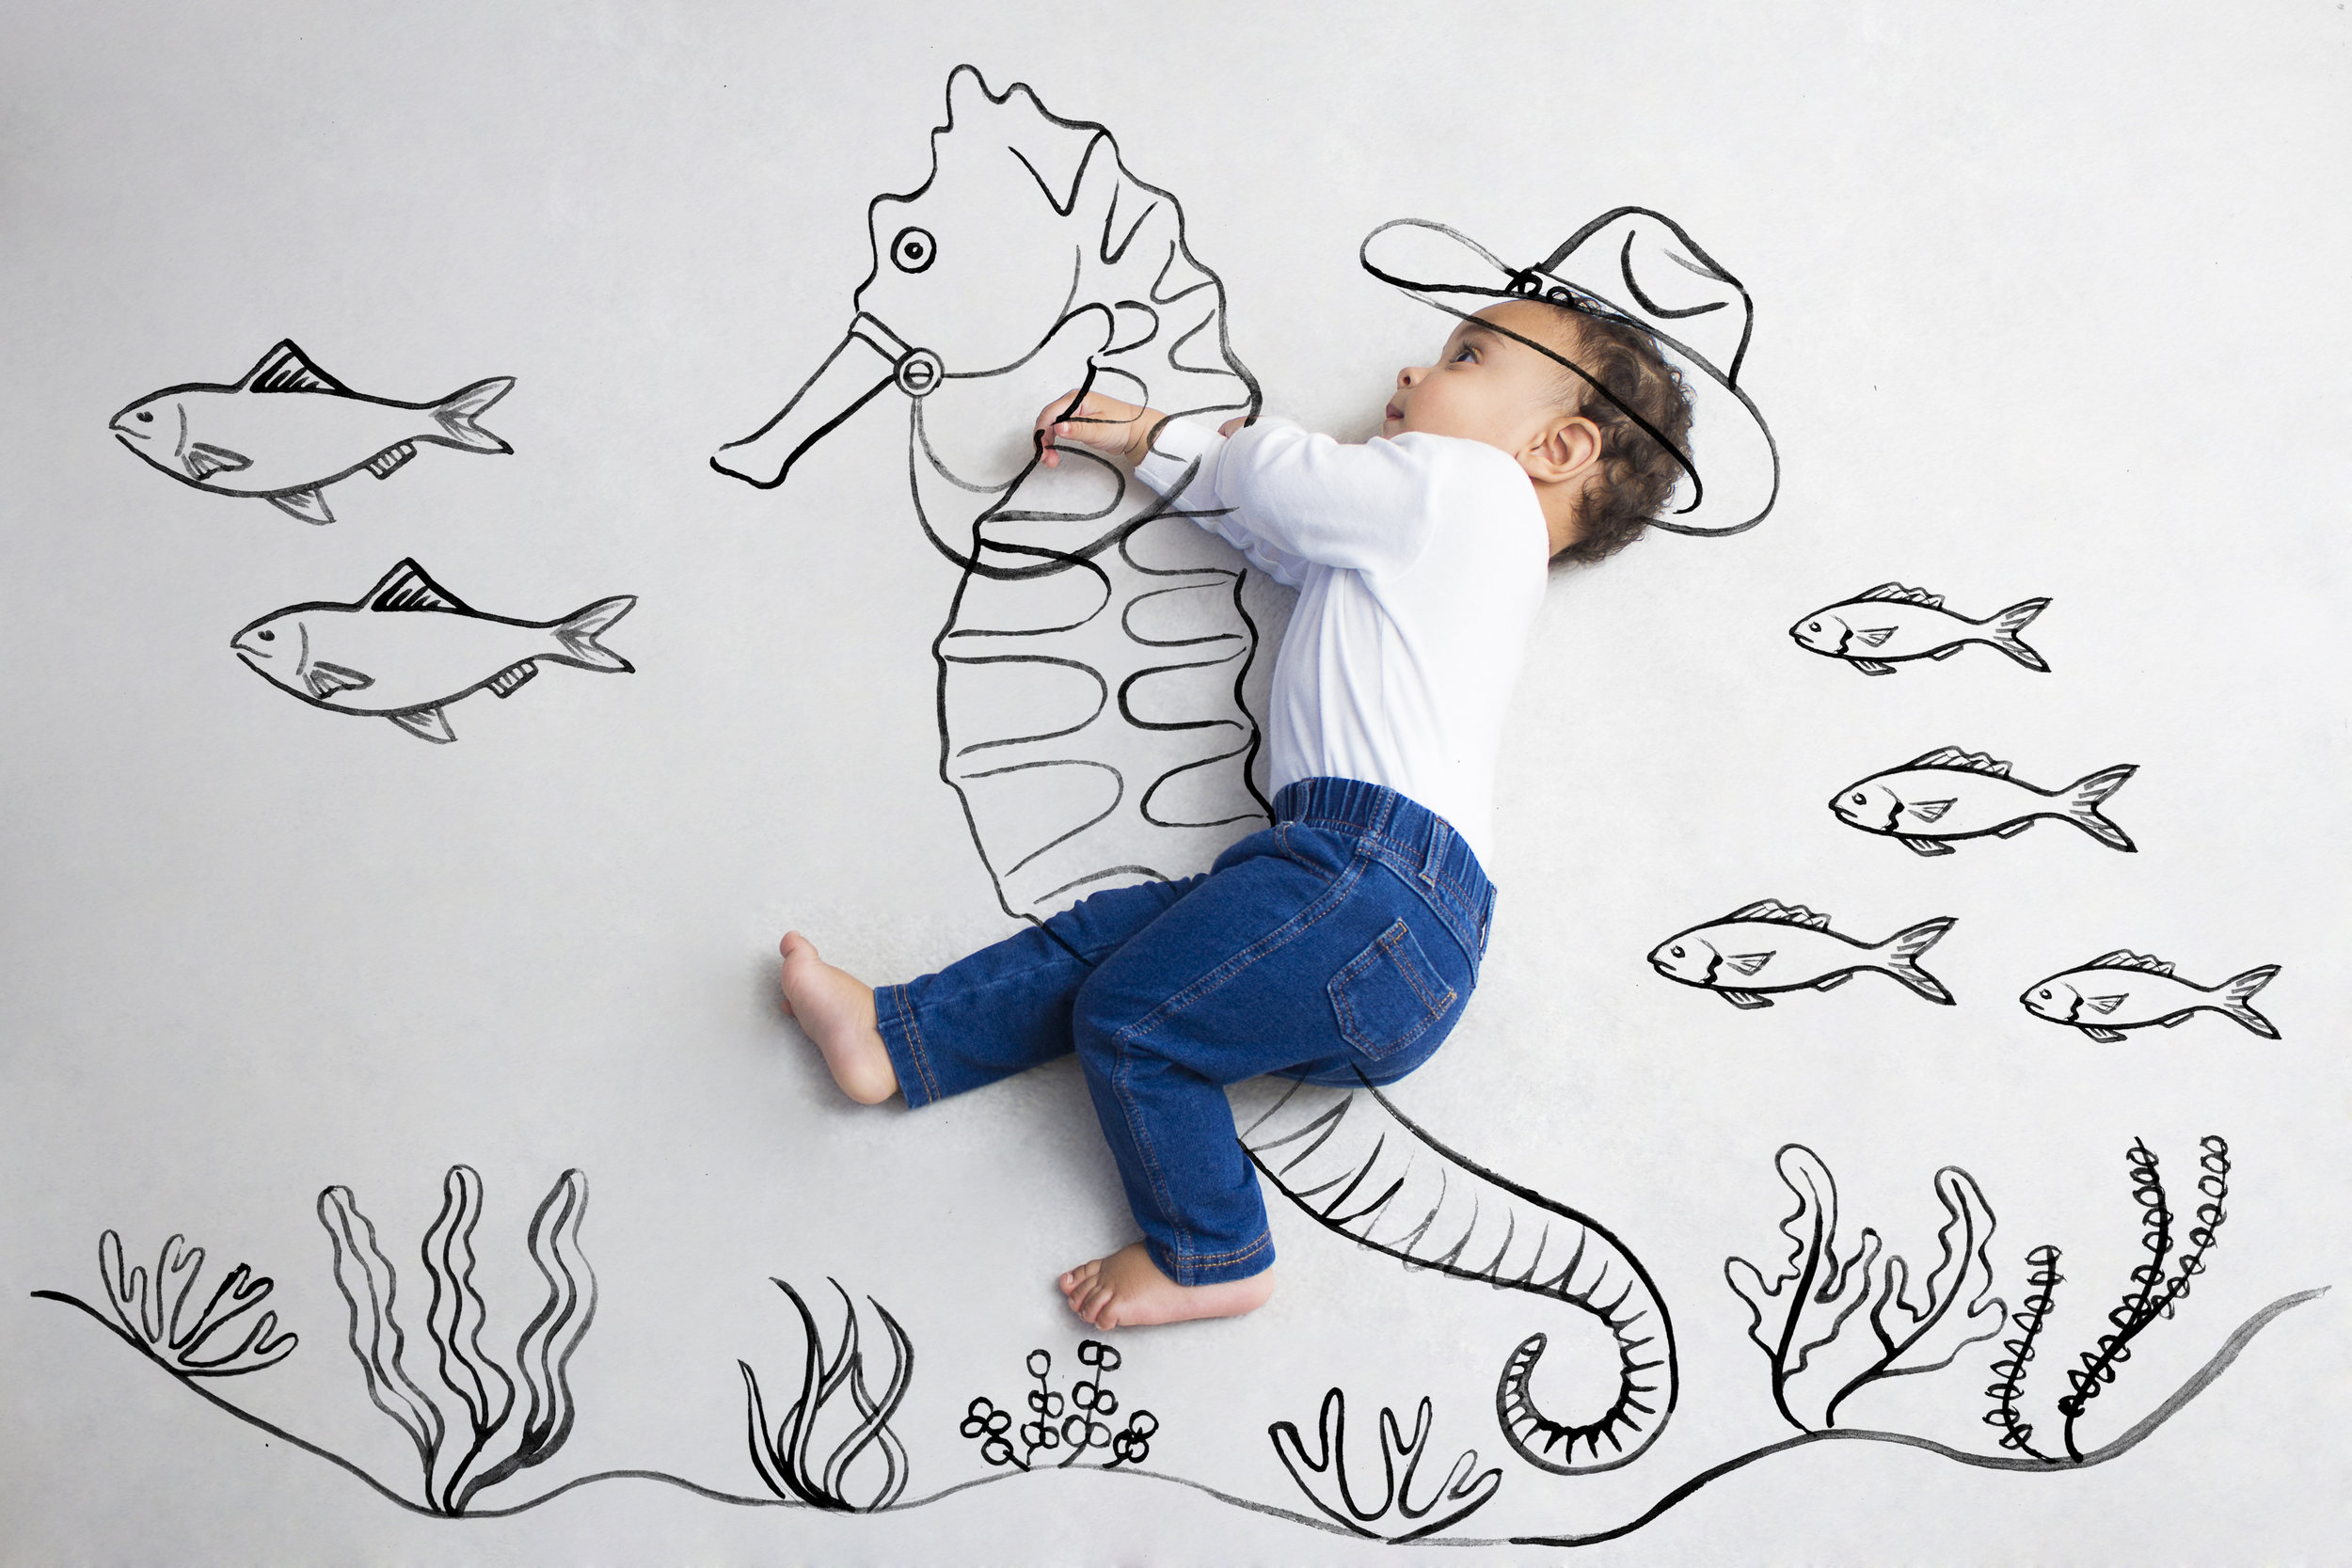 Illustration and photography collaboration for Children by illustrator, Willa Gebbie